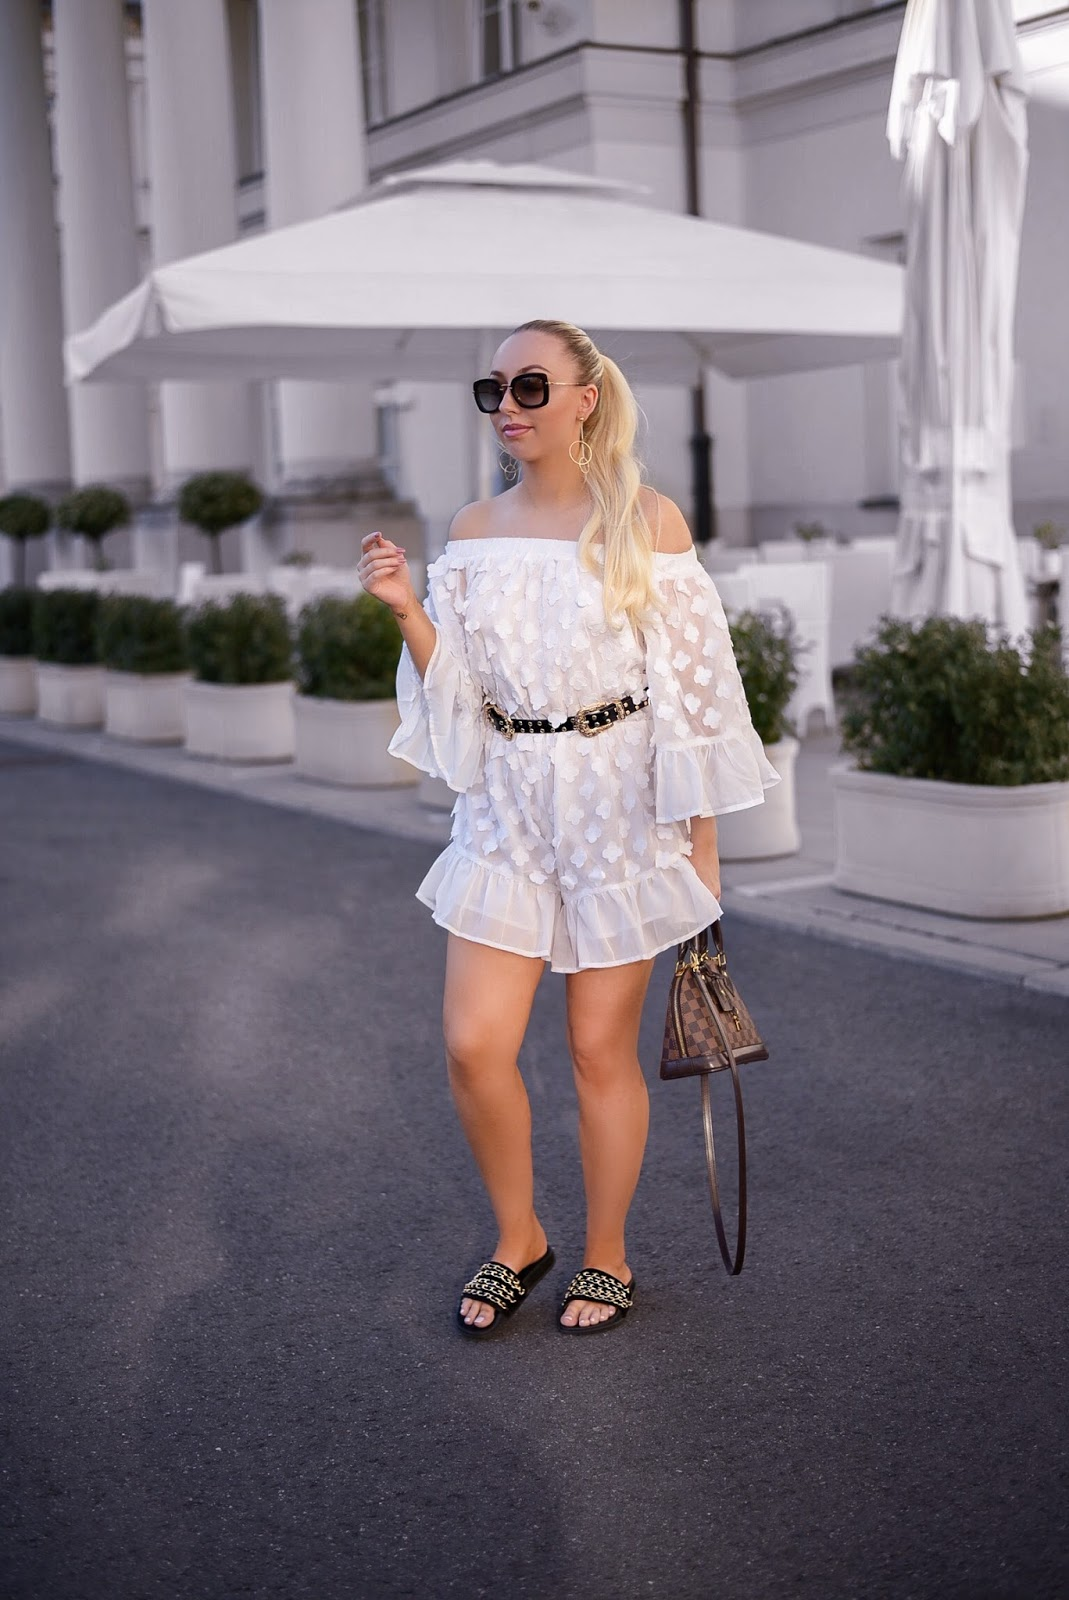 shein review_white playsuit_summer outfit ideas